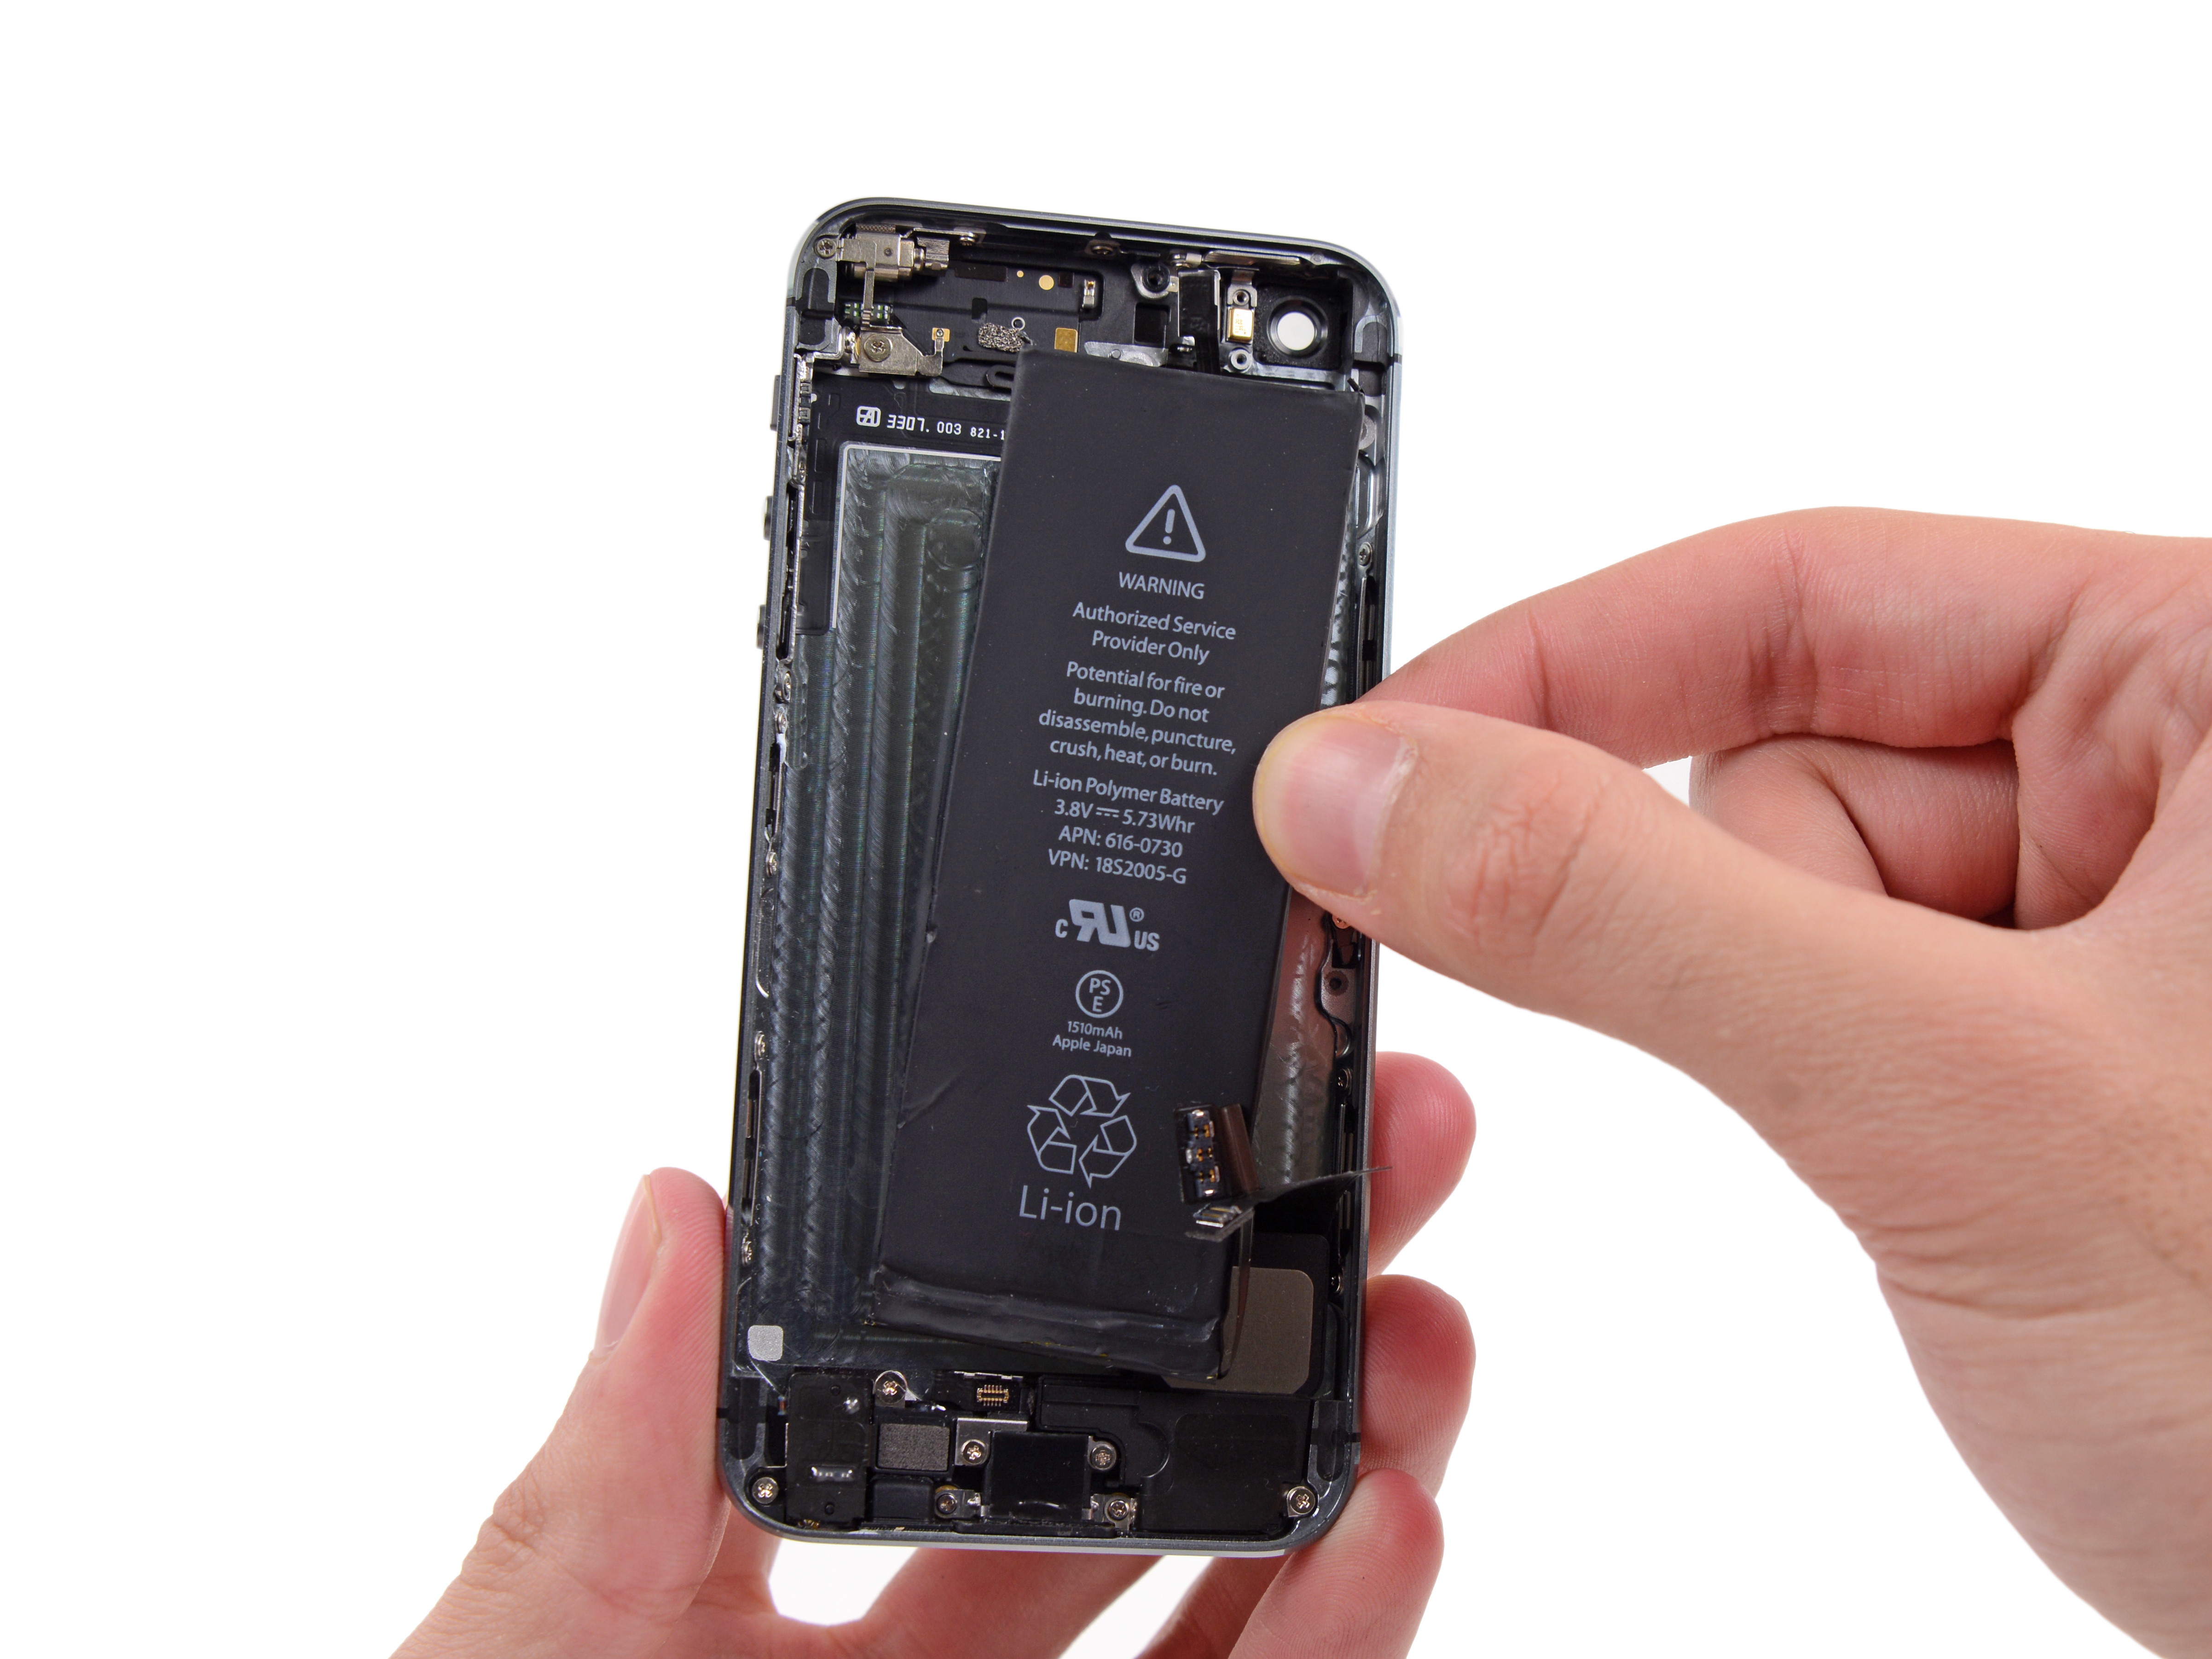 How to replace the battery in your iPhone 5s - iFixit Repair Guide